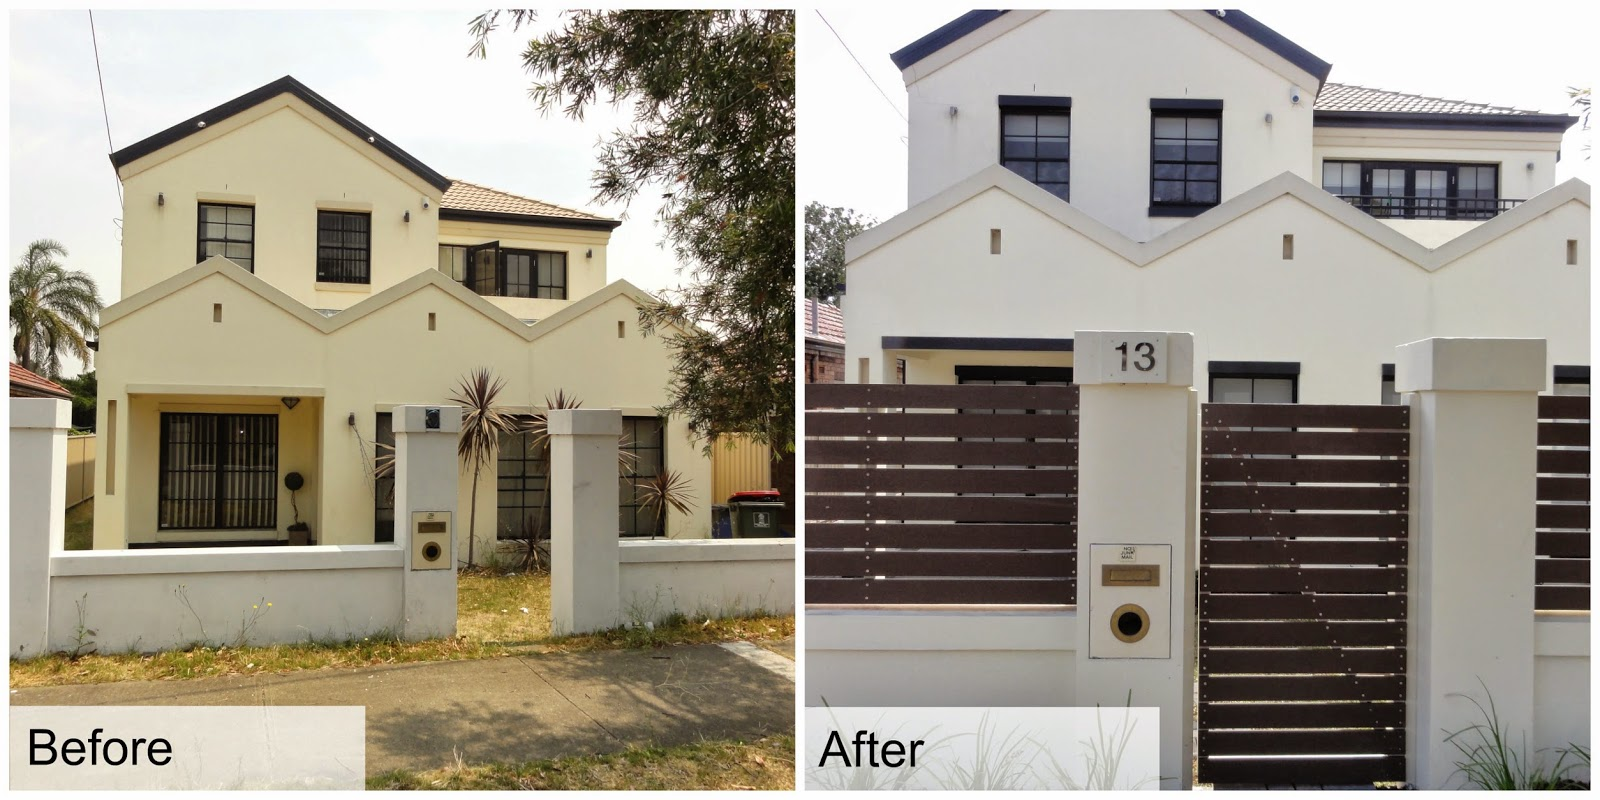 Luxaflex australia selling houses australia renovation for Renovated homes before and after photos